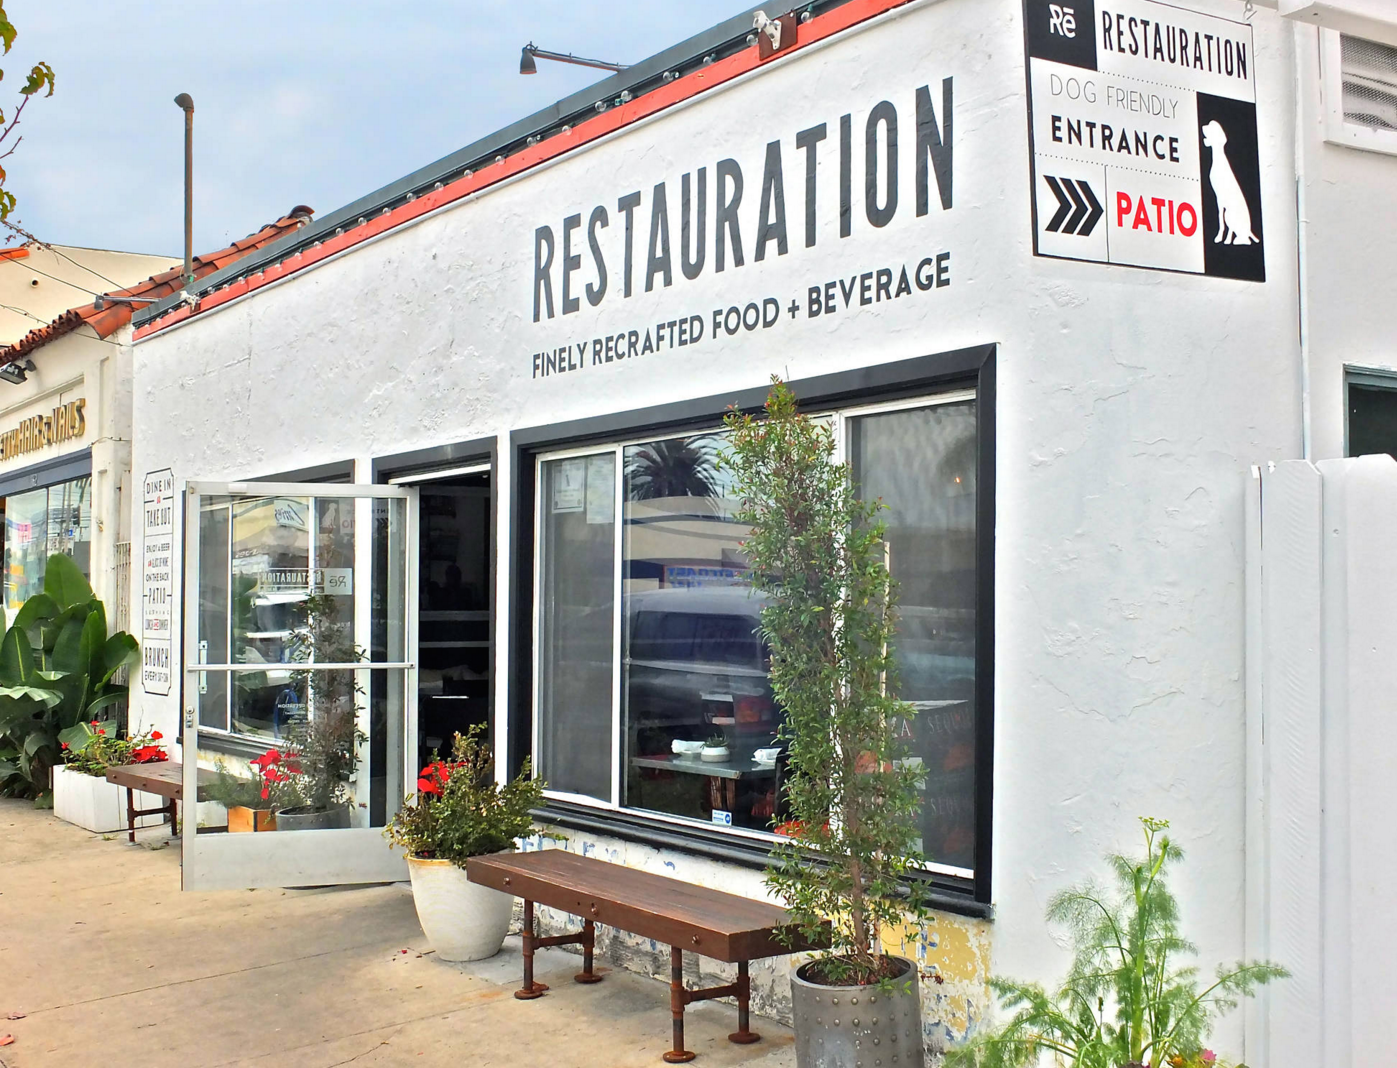 A white Spanish stucco restaurant shown from the outside at daytime.